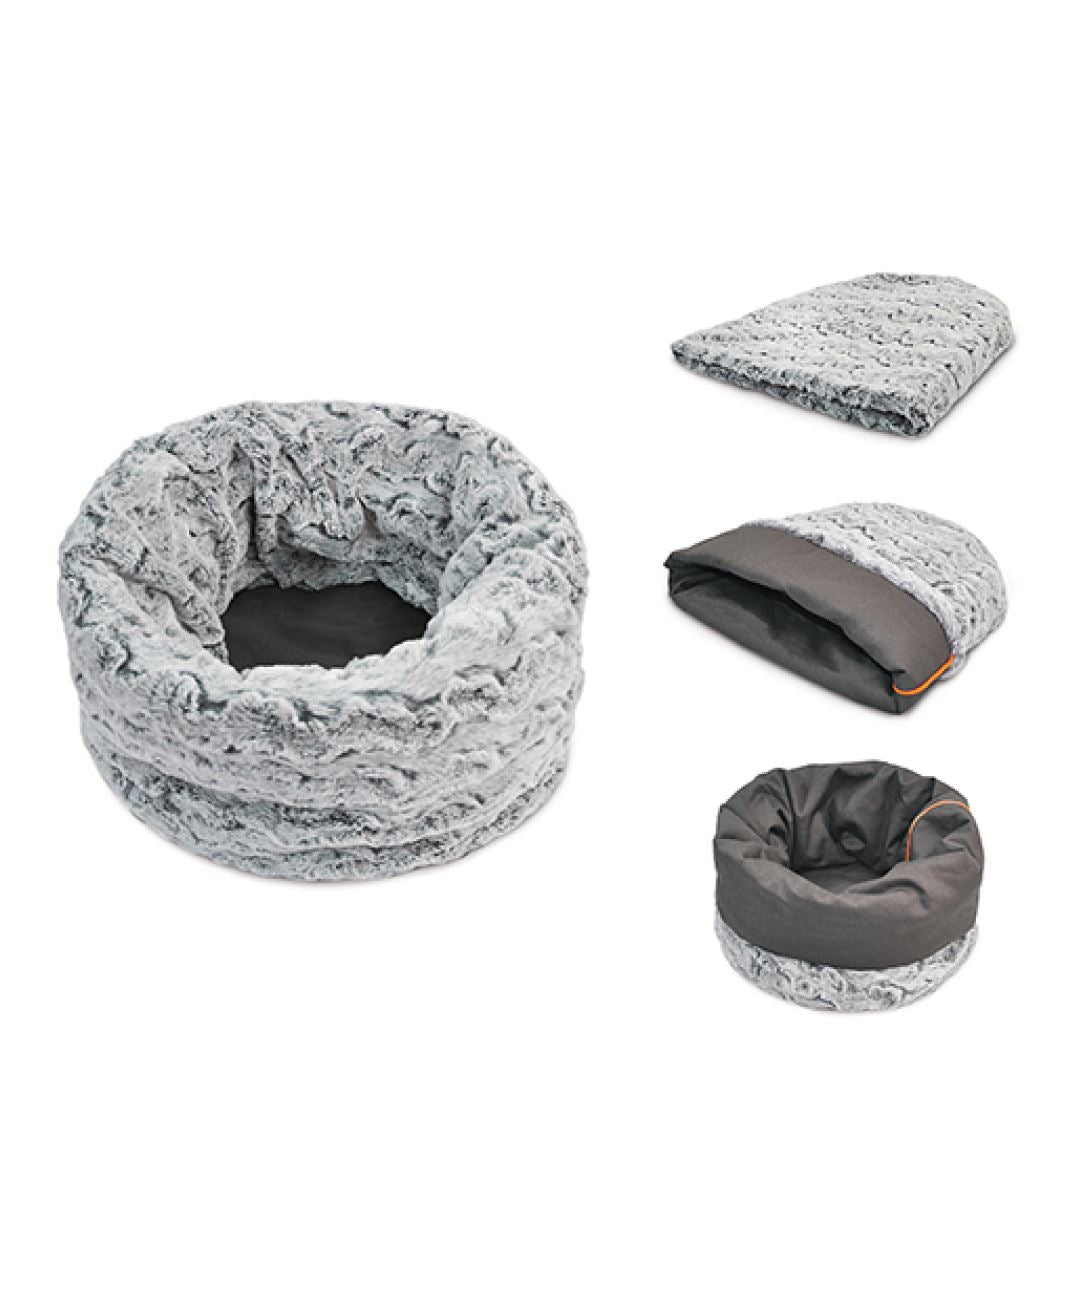 P.L.A.Y. Snuggle Pet Bed (2 colors) Dog Bed PLAY S Husky Gray